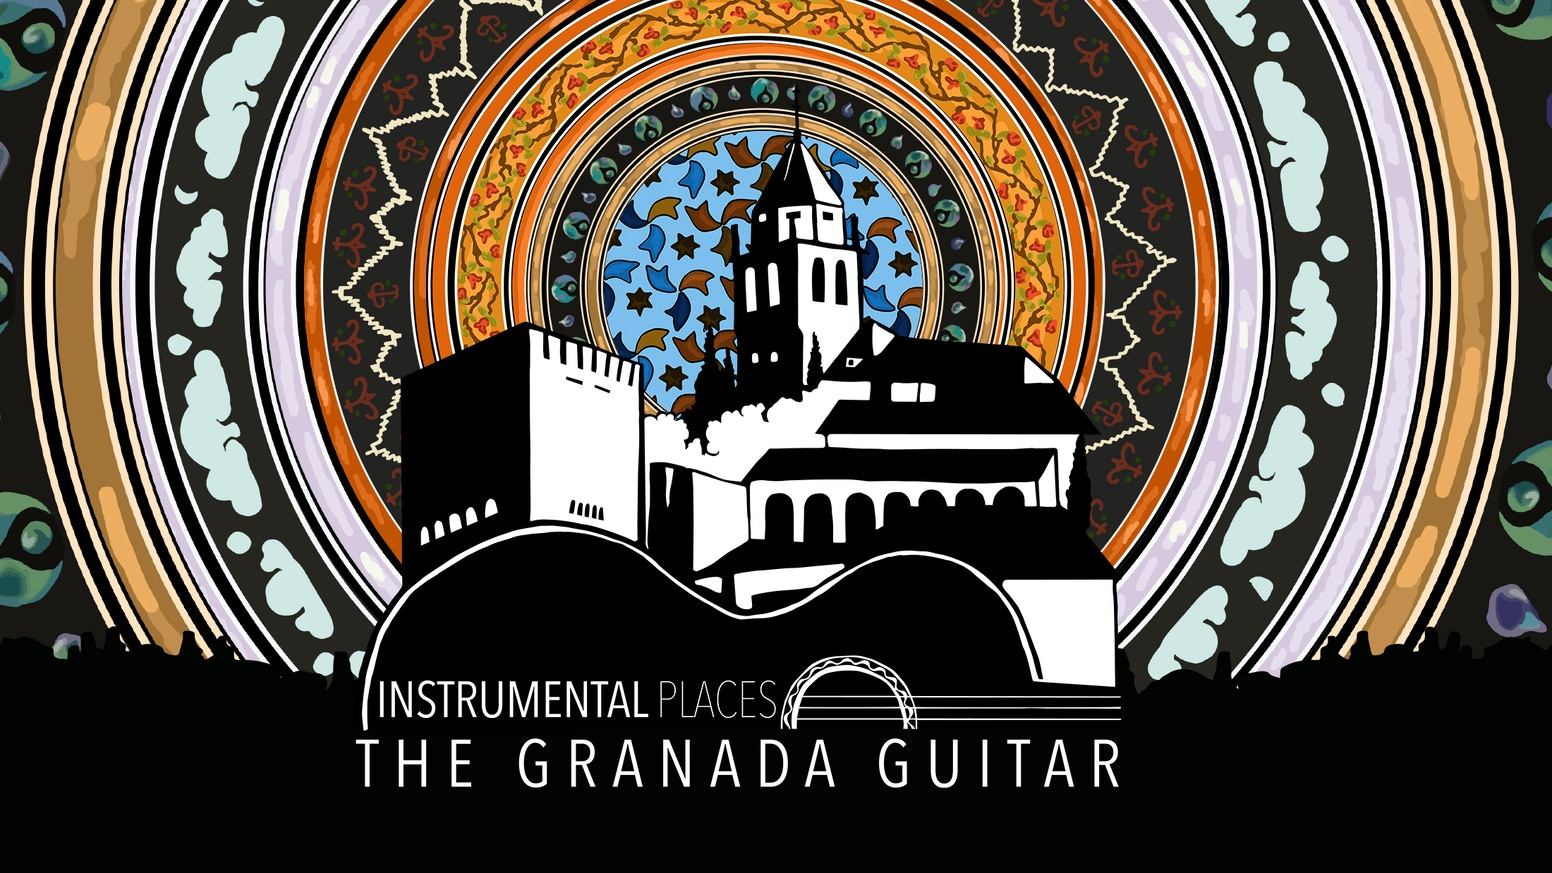 A documentary film that follows luthier Stephan Connor as he builds a guitar that reflects the magical city of Granada, Spain.